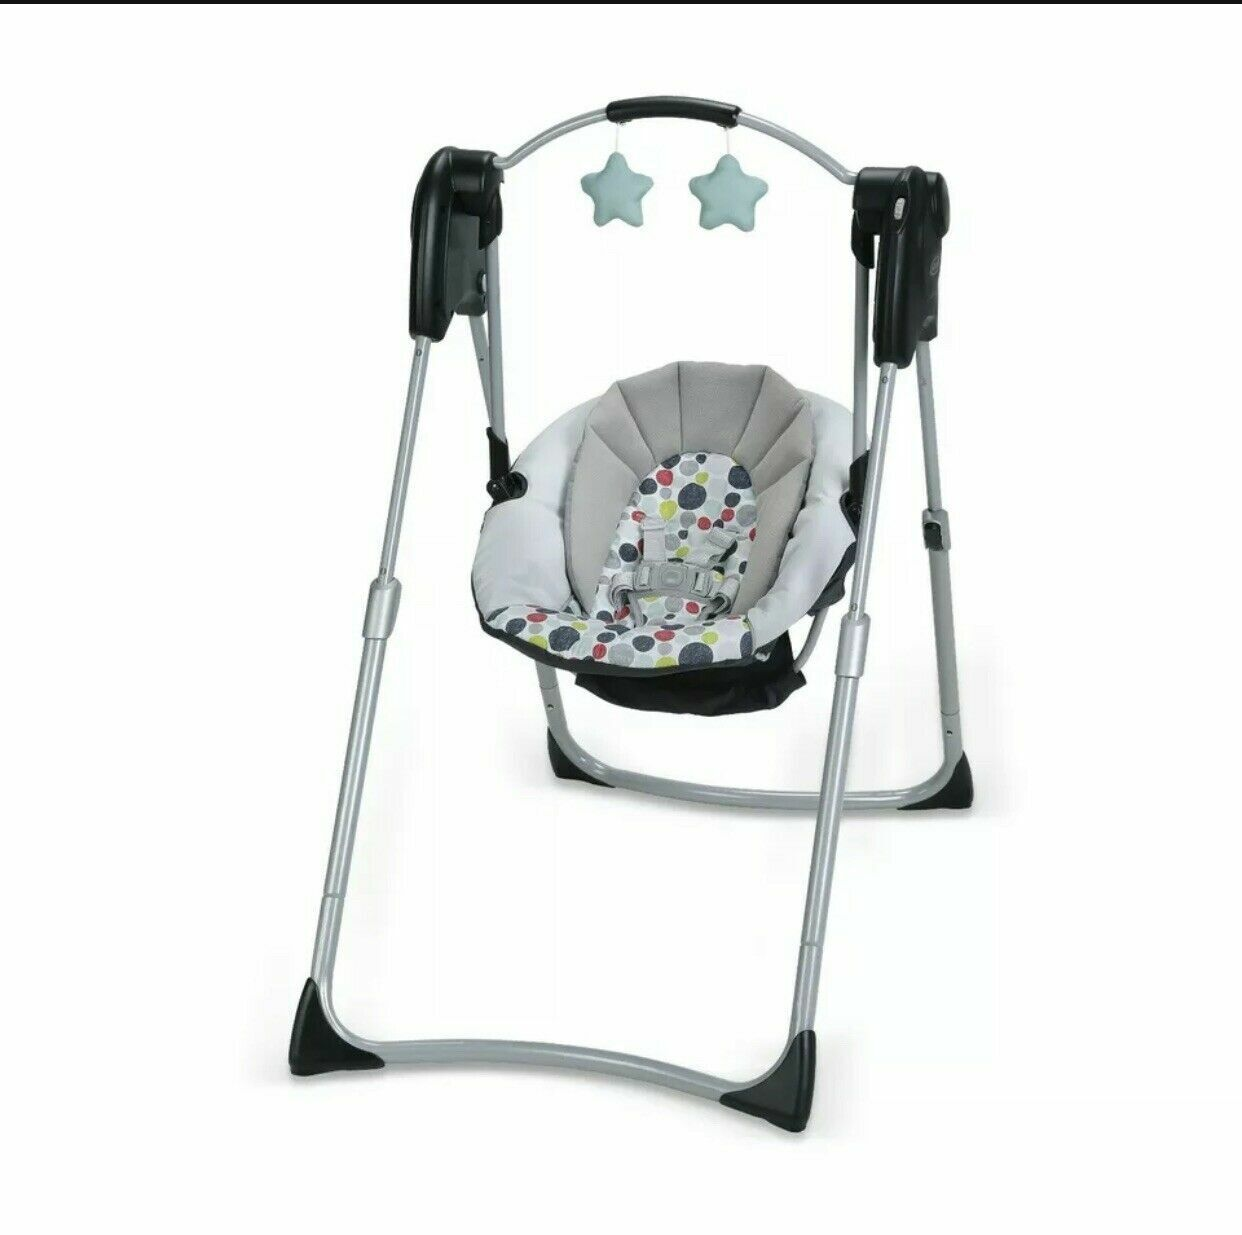 Graco Slim Spaces™ Compact Baby Swing, Space-Saving Design